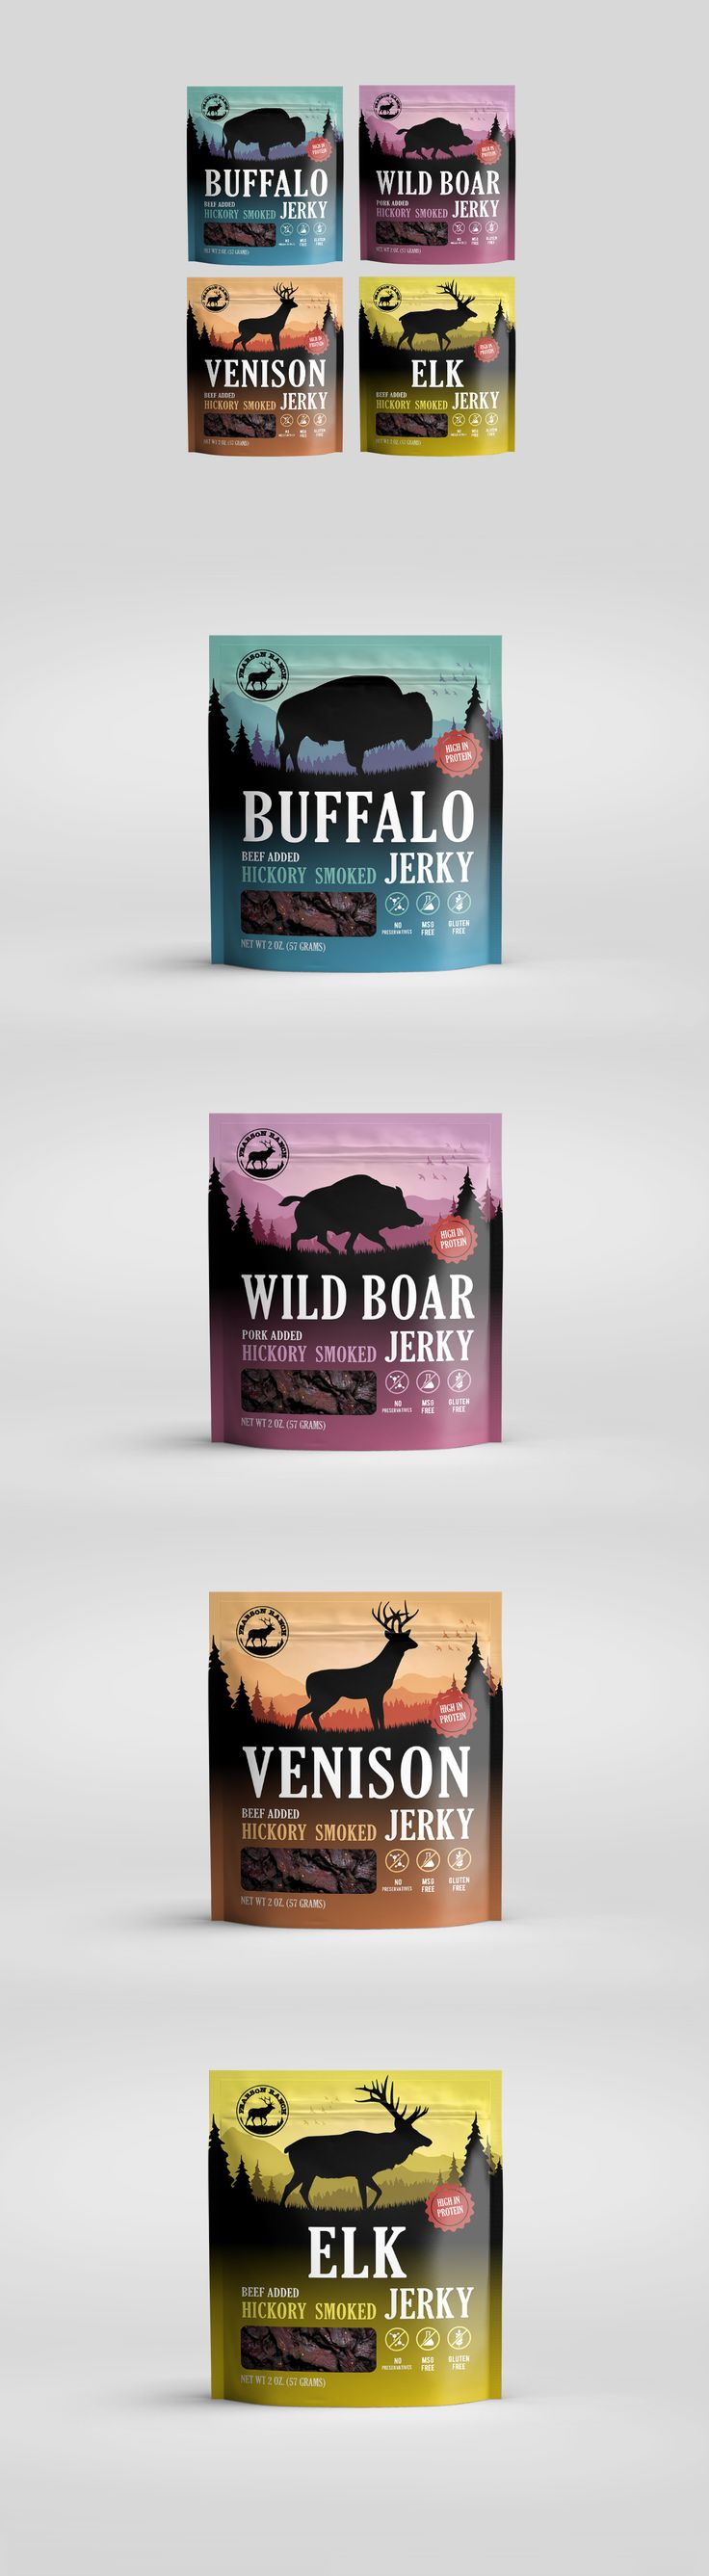 Jerky snack packaging design by DmitryM. A dark animal silhouette is set against a colorful wilderness scene. #pouch #design